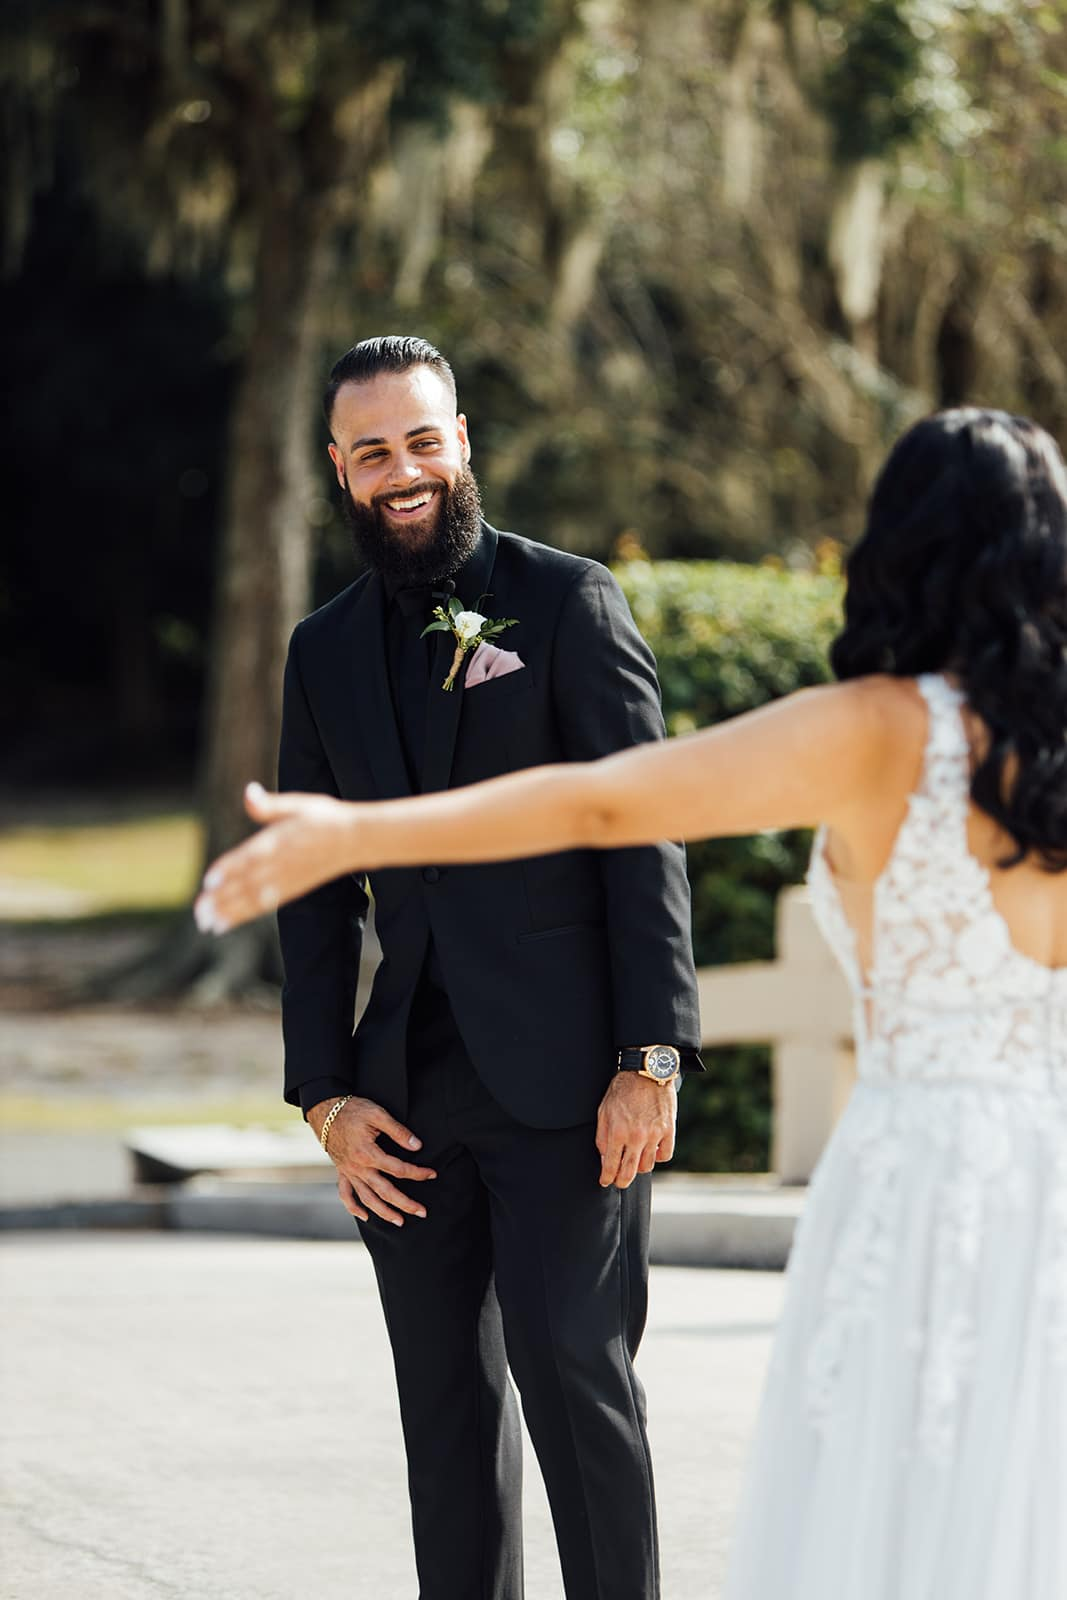 bride walks over to groom with arm out and lace wedding gown on groom dressed in black tux with beard